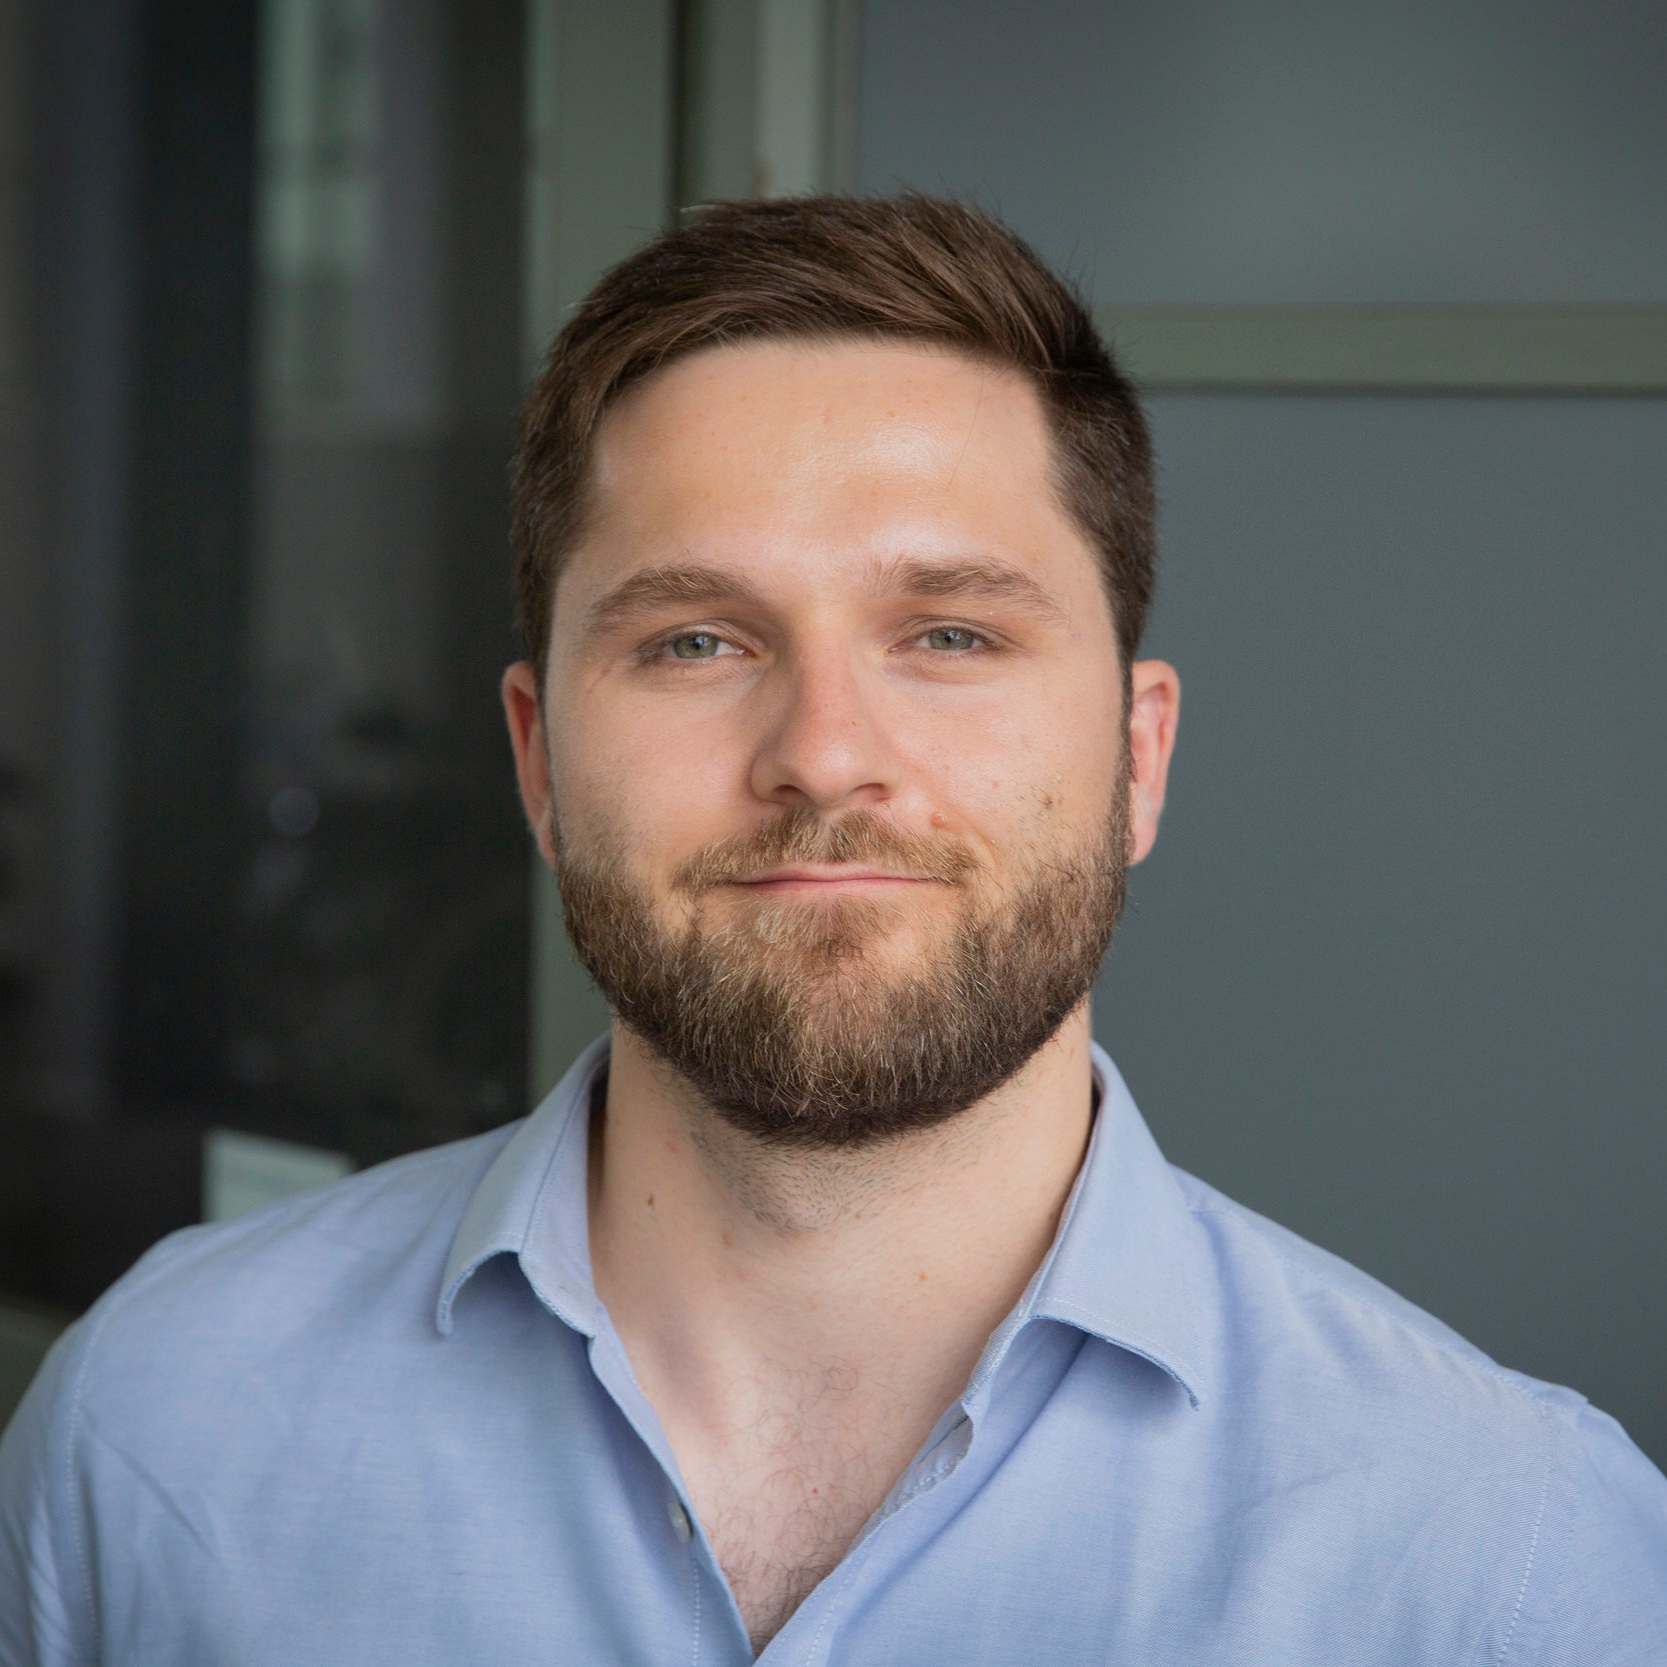 Maxime Stauffer   Maxime leads our policy-making research, he is a program associate at the Geneva Science Policy Interface, co-founder of the Social Complexity Lab Geneva and adviser to the European Commission's Joint Research Centre.